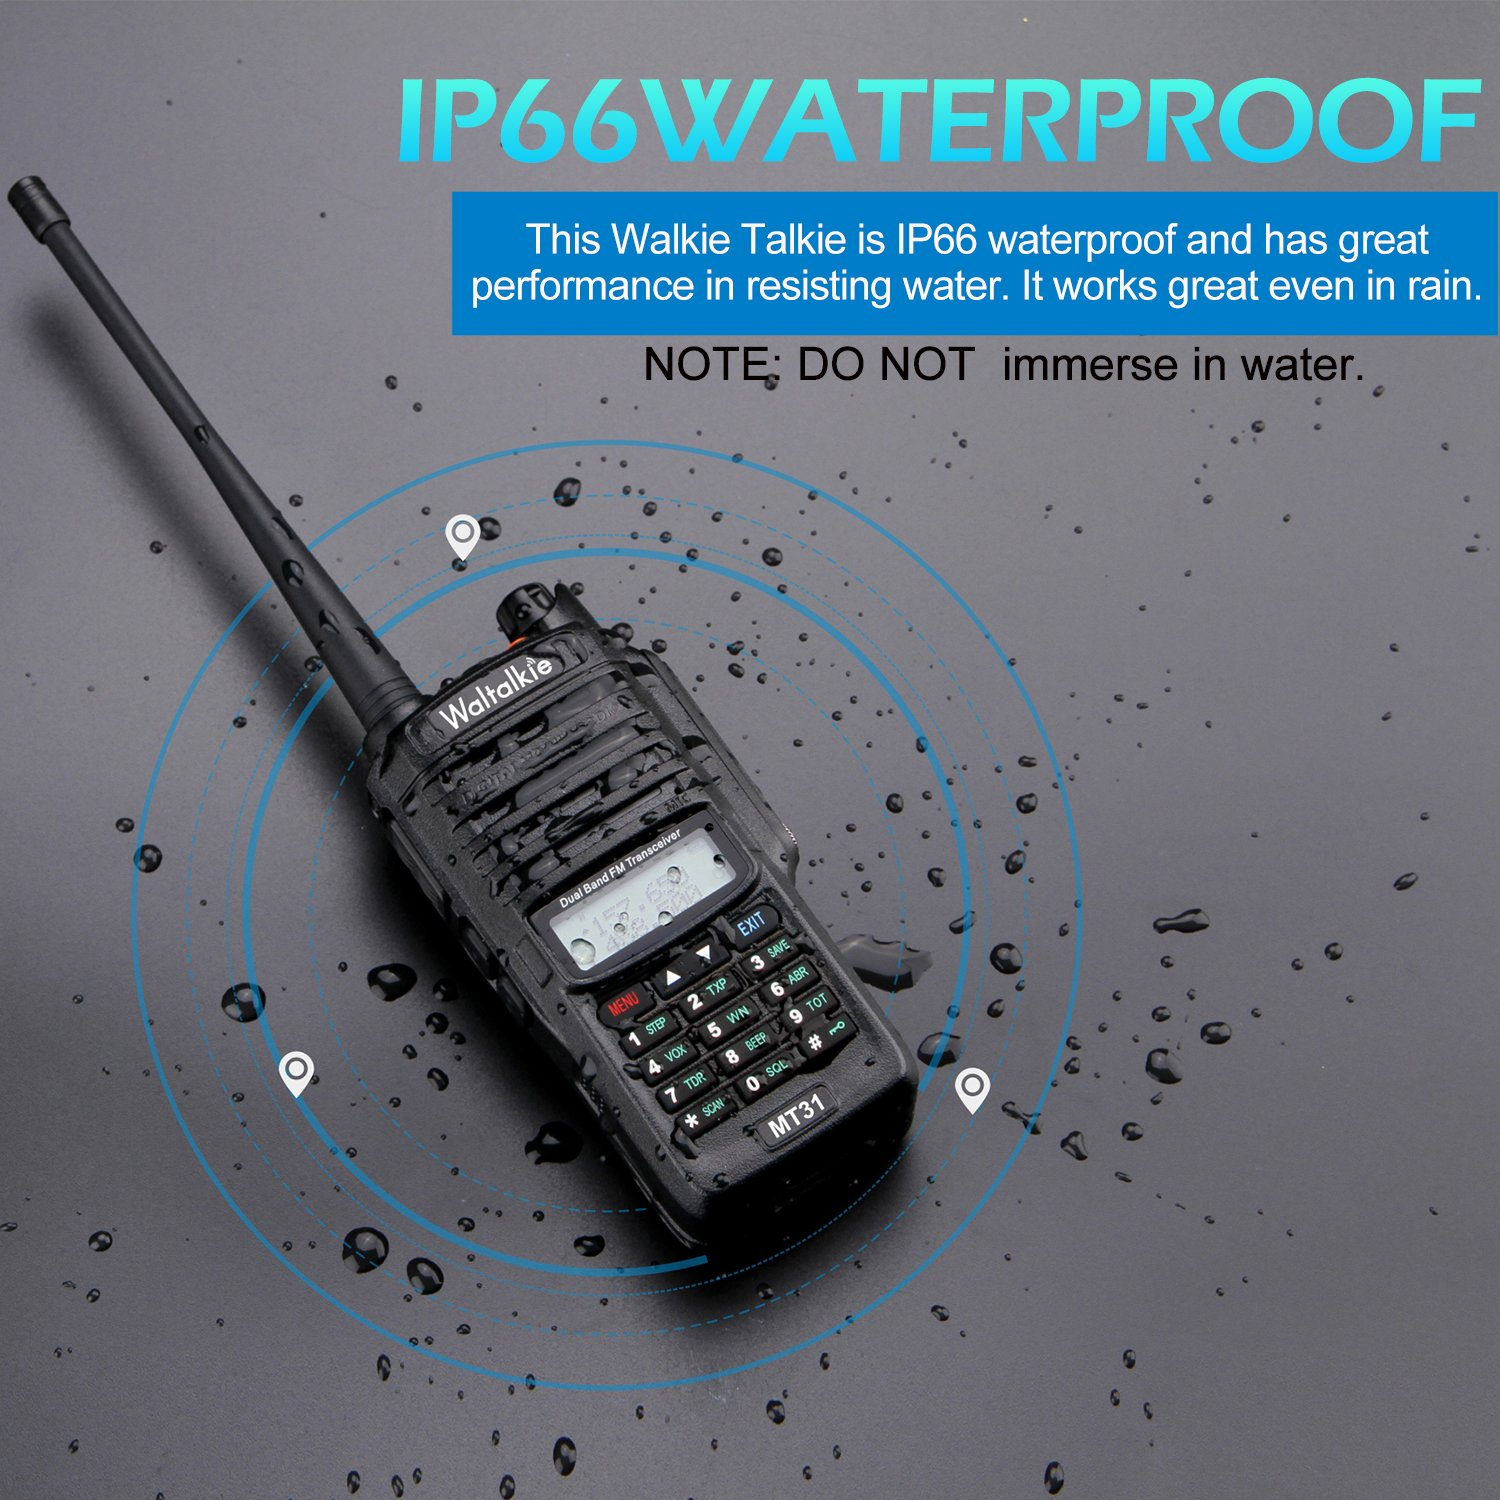 Wireless Radio Transceiver, IP66 Waterproof & Dustproof Two Way Radio Walkie Talkie with Headset/LED Flashlight/Battery/Charger for Indoor & Outdoor Activities by Waltalkie (Image #2)